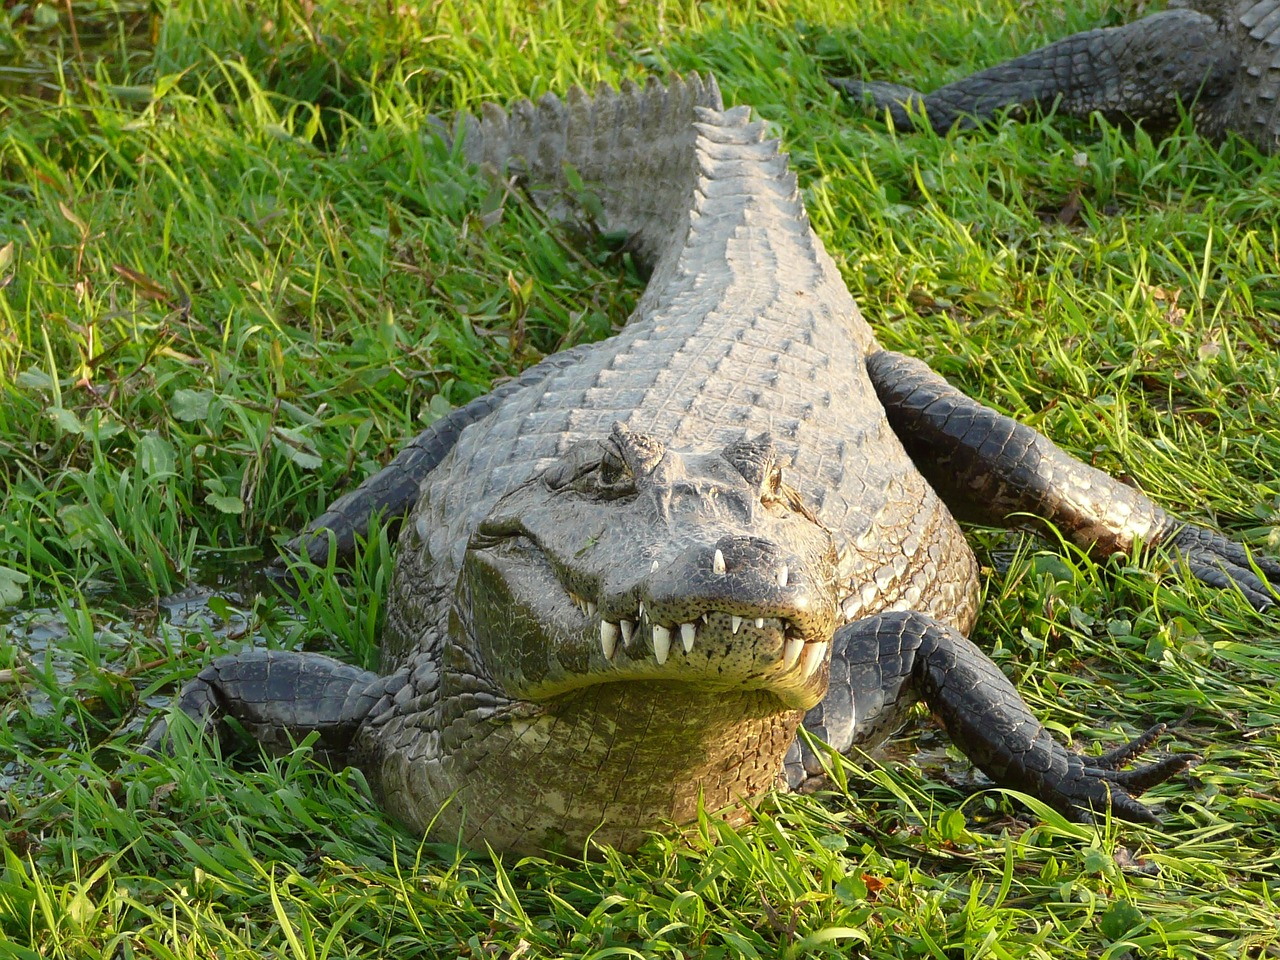 Free pictures of alligators Animal Books for Kids: All About Alligators and